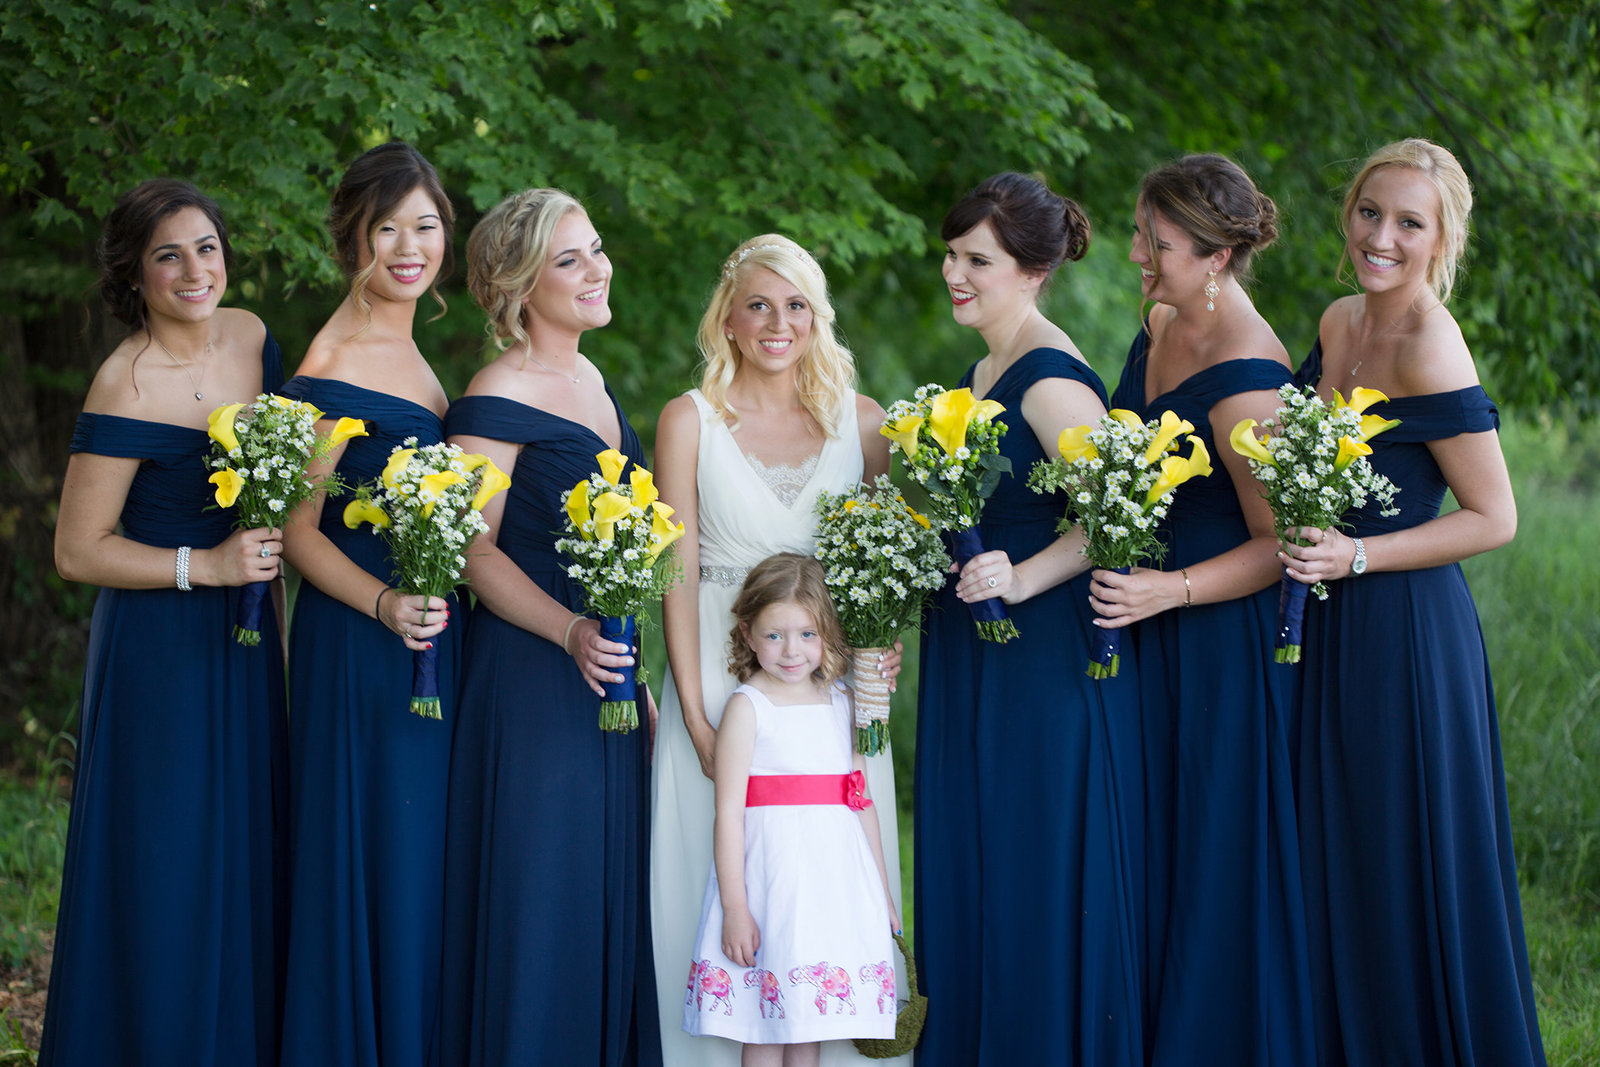 philadelphia-bridesmaids-wedding-philadephia-wedding-photographer